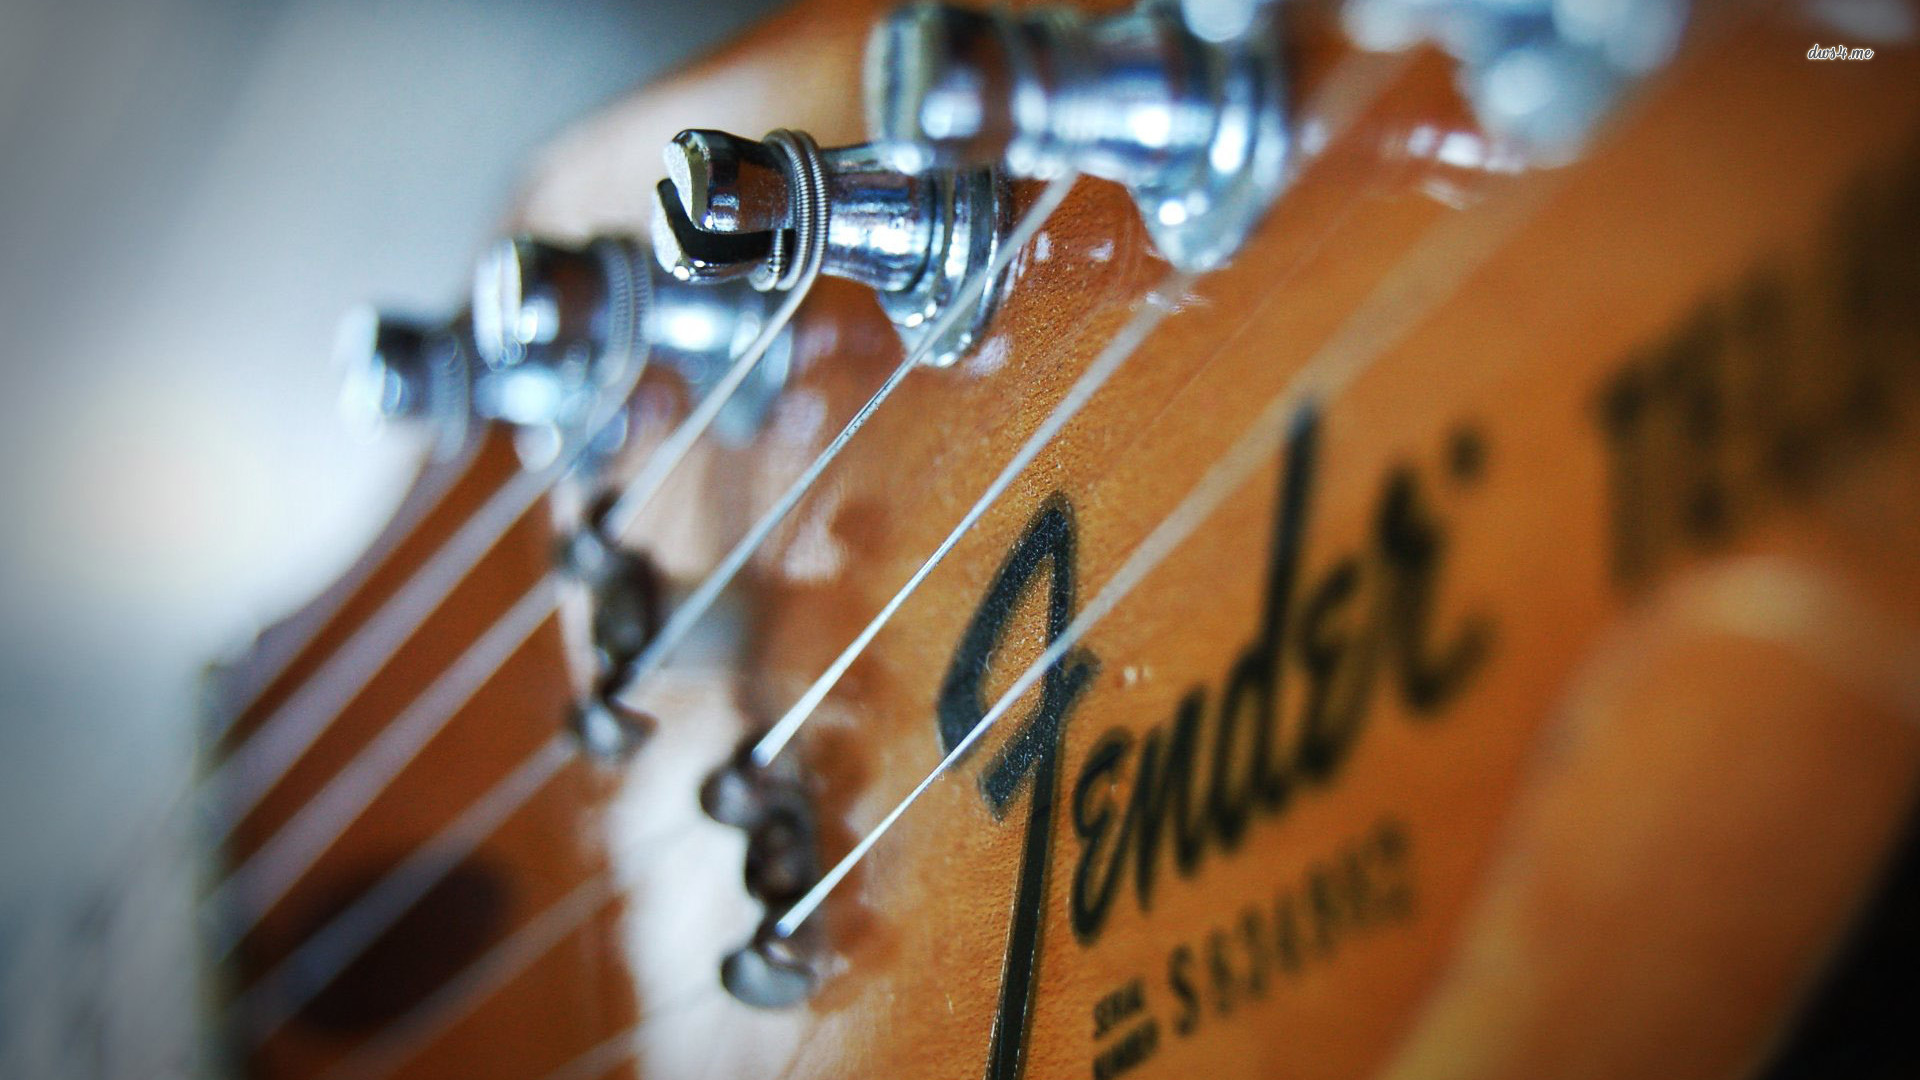 Photo of Fender HD (p.39132206) - B.SCB WP&BG Collection